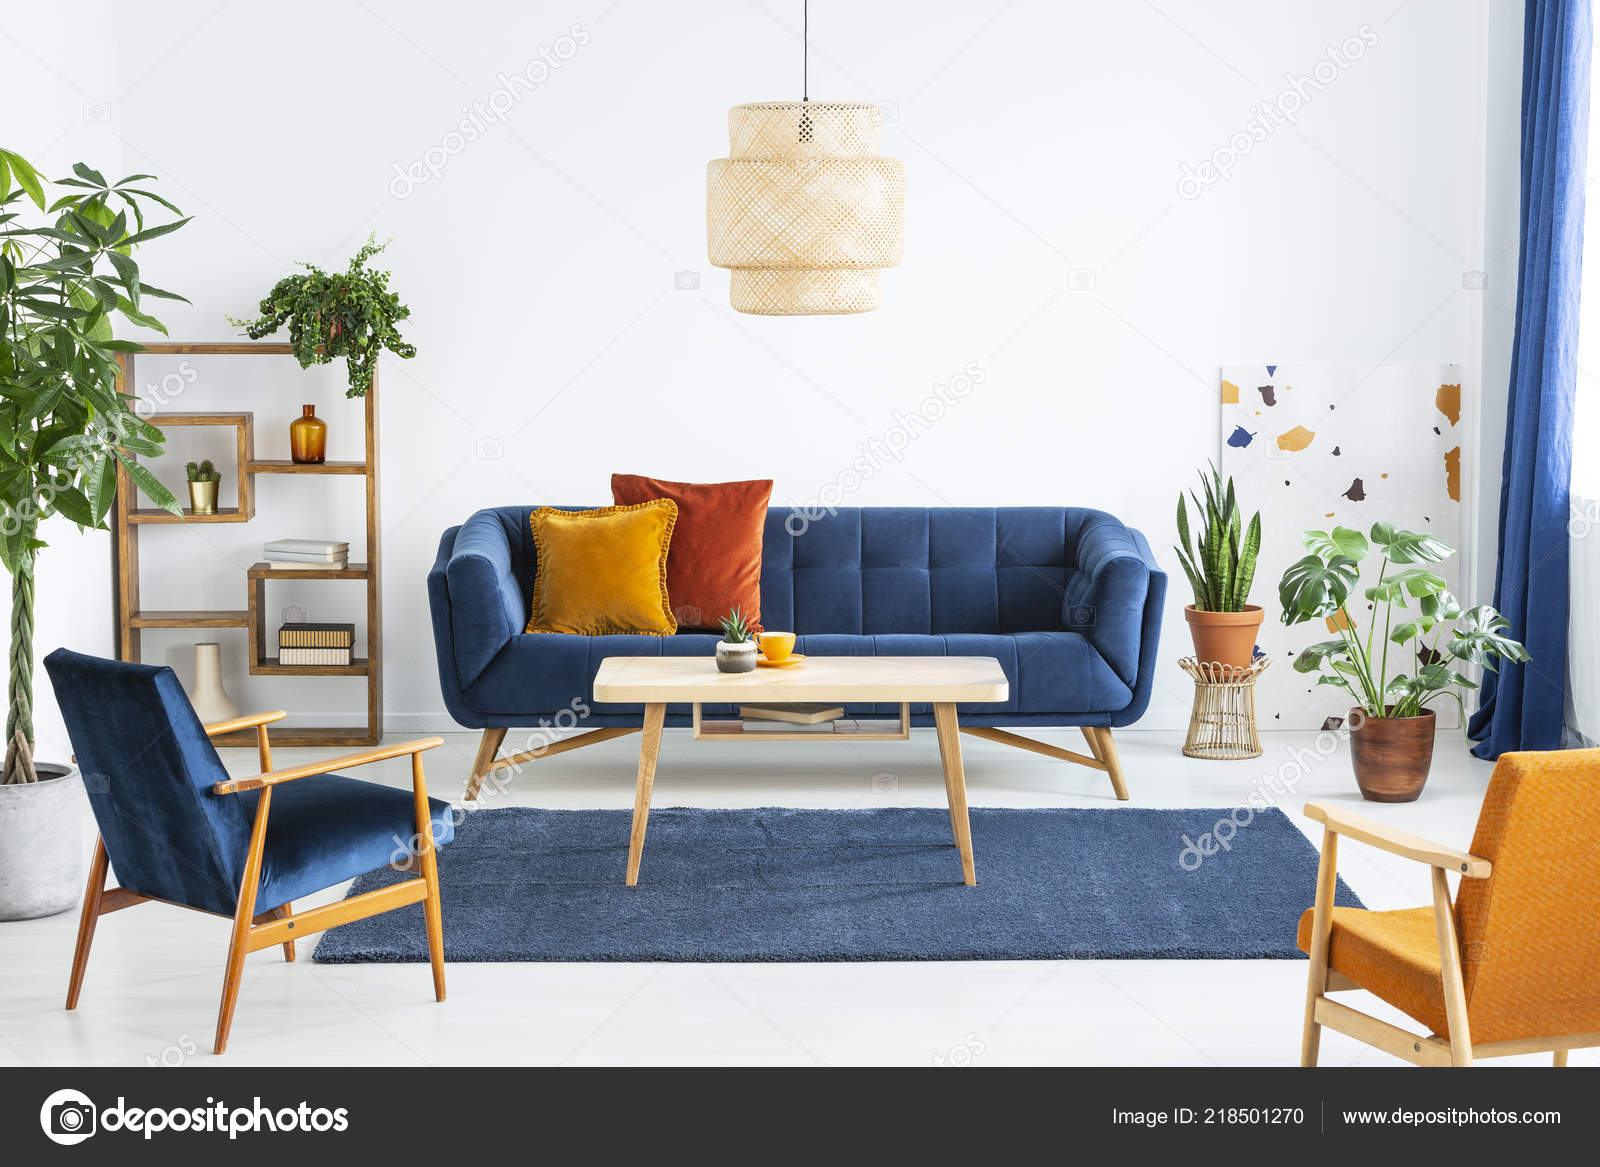 Remarkable Retro Armchairs Wooden Frame Colorful Pillows Navy Blue Sofa Theyellowbook Wood Chair Design Ideas Theyellowbookinfo